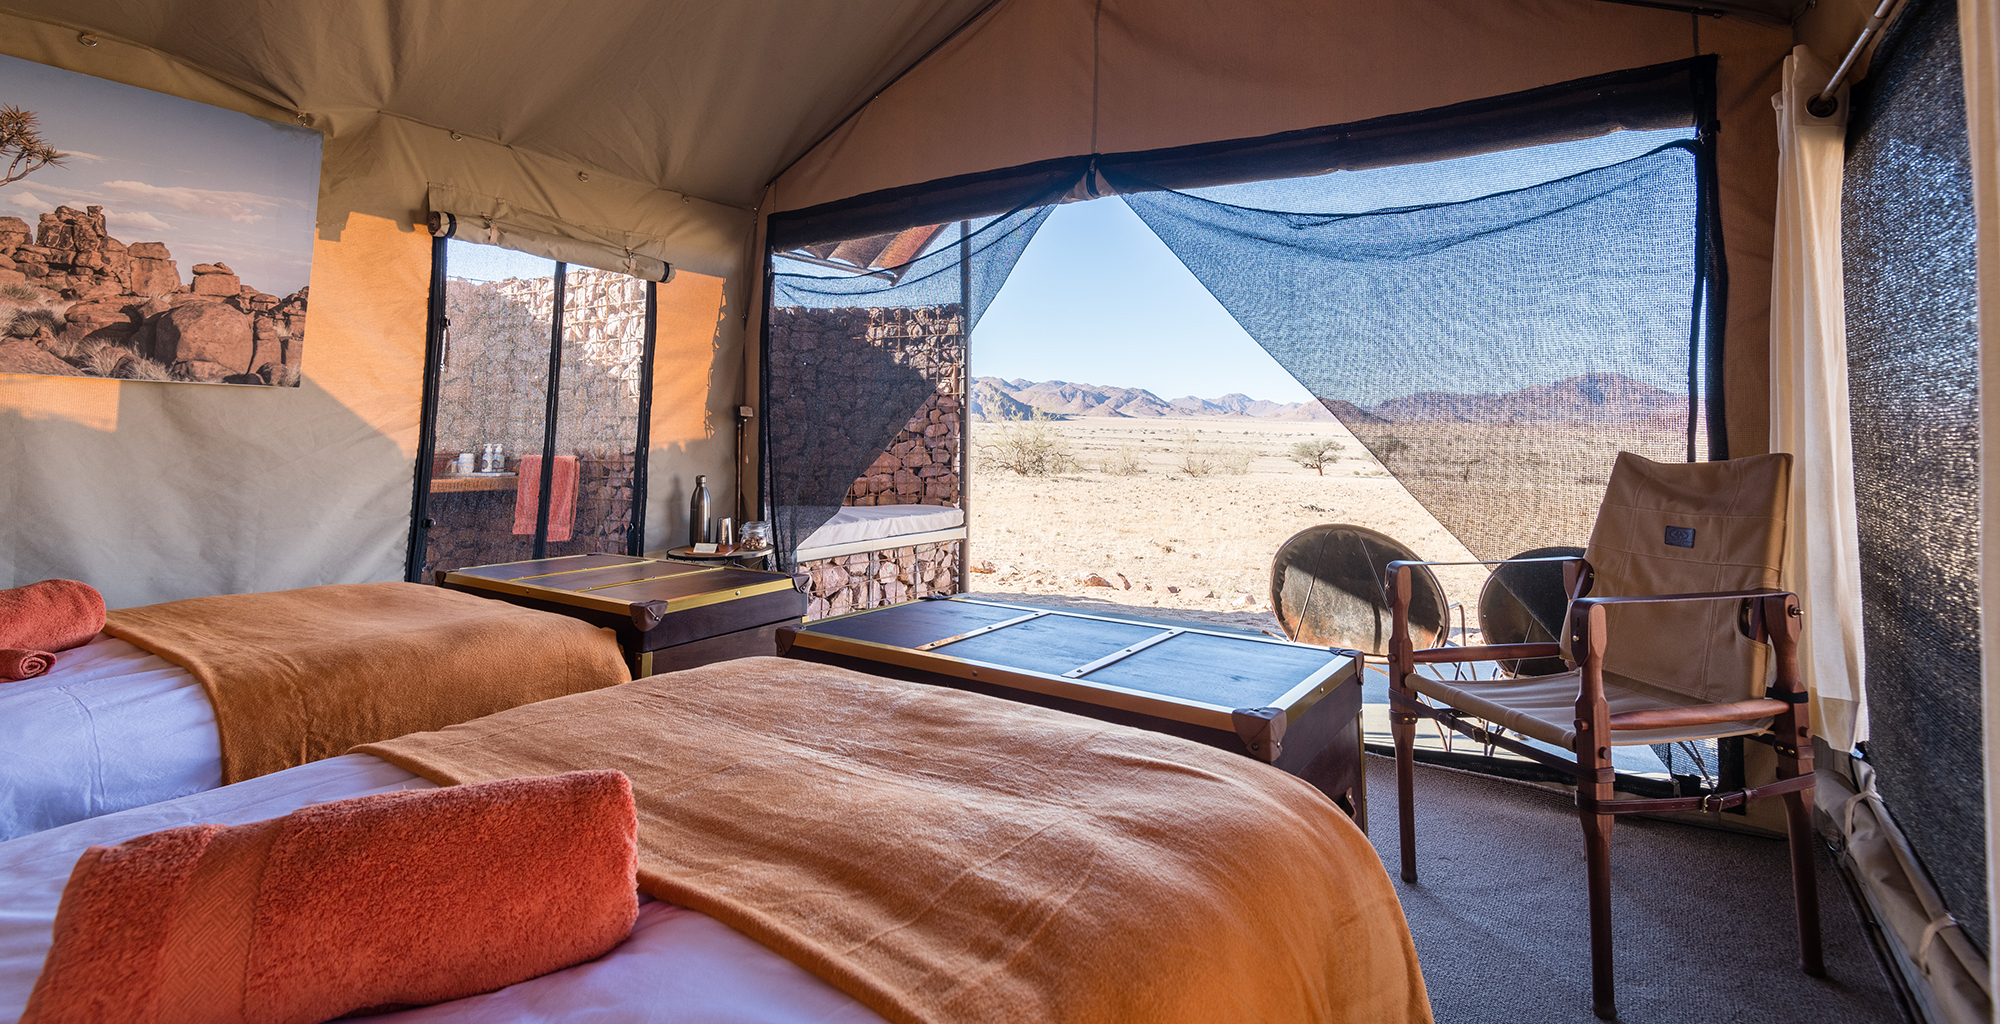 Namibia-Sossus-Under-Canvas-Bedroom-View